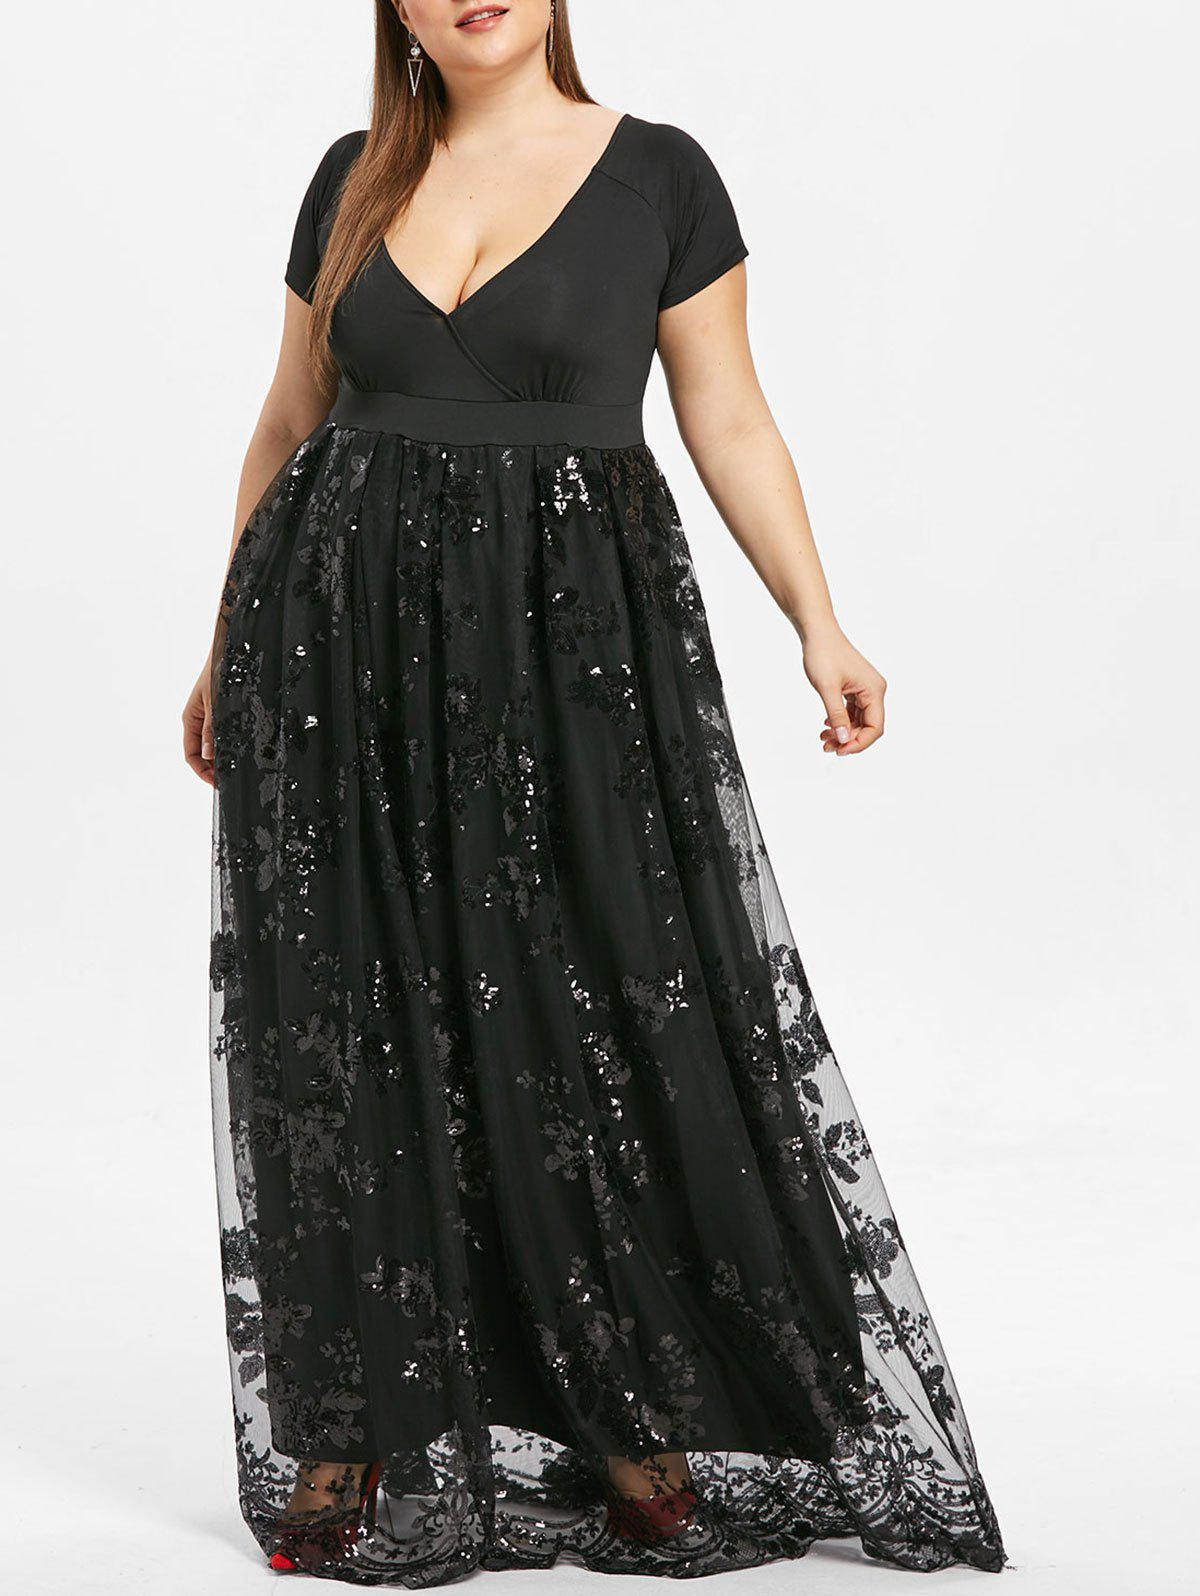 28% OFF] Plus Size Floral Sequined Maxi Prom Dress | Rosegal